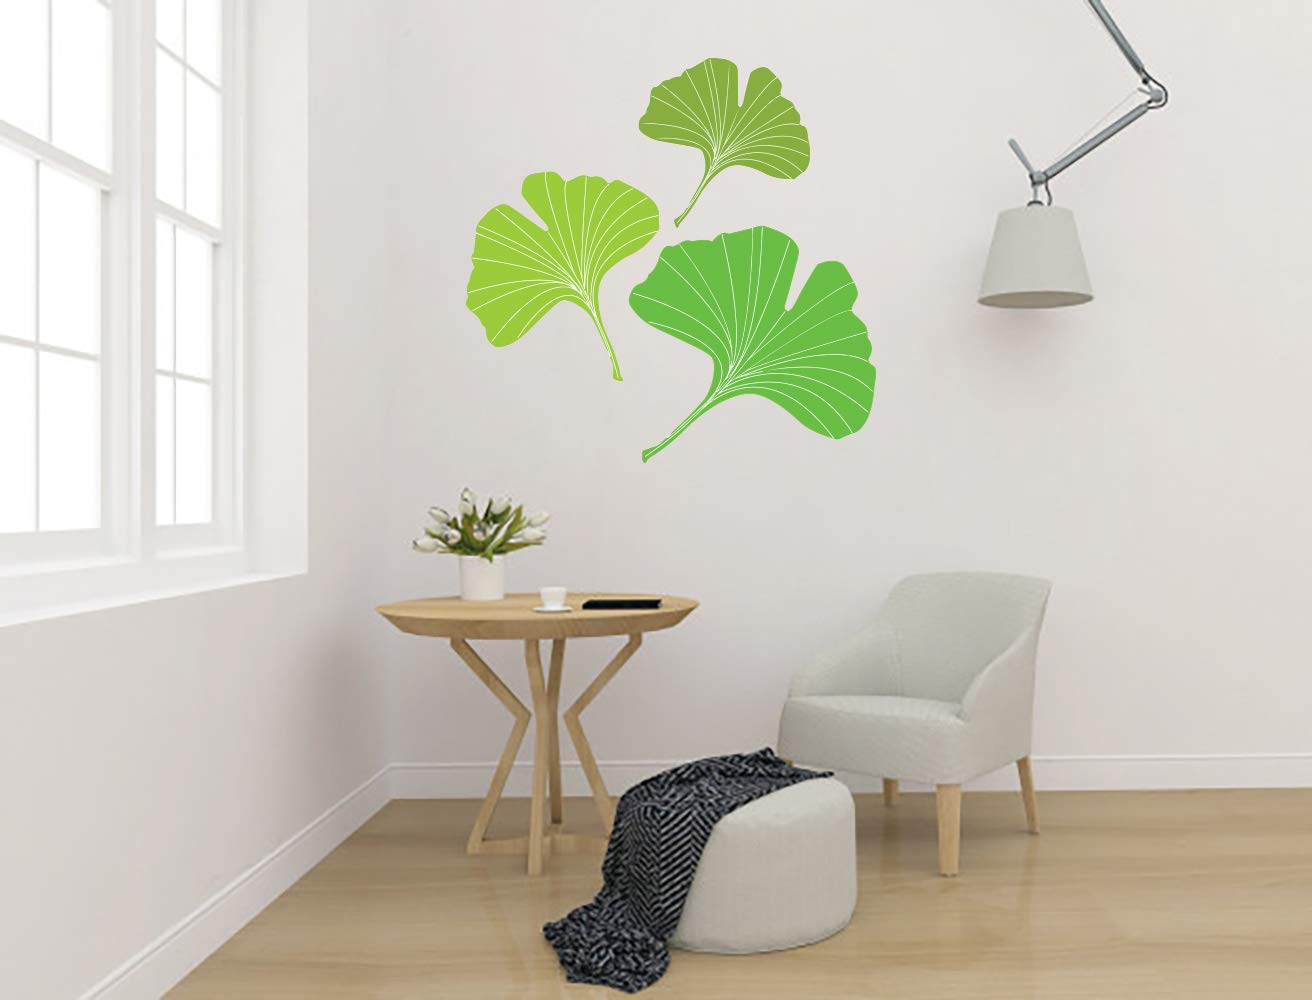 Ginkgo Biloba Leaf Plant Aesthetic Room Max 67% OFF M 2021 autumn and winter new Car Vinyl Wall Sticker